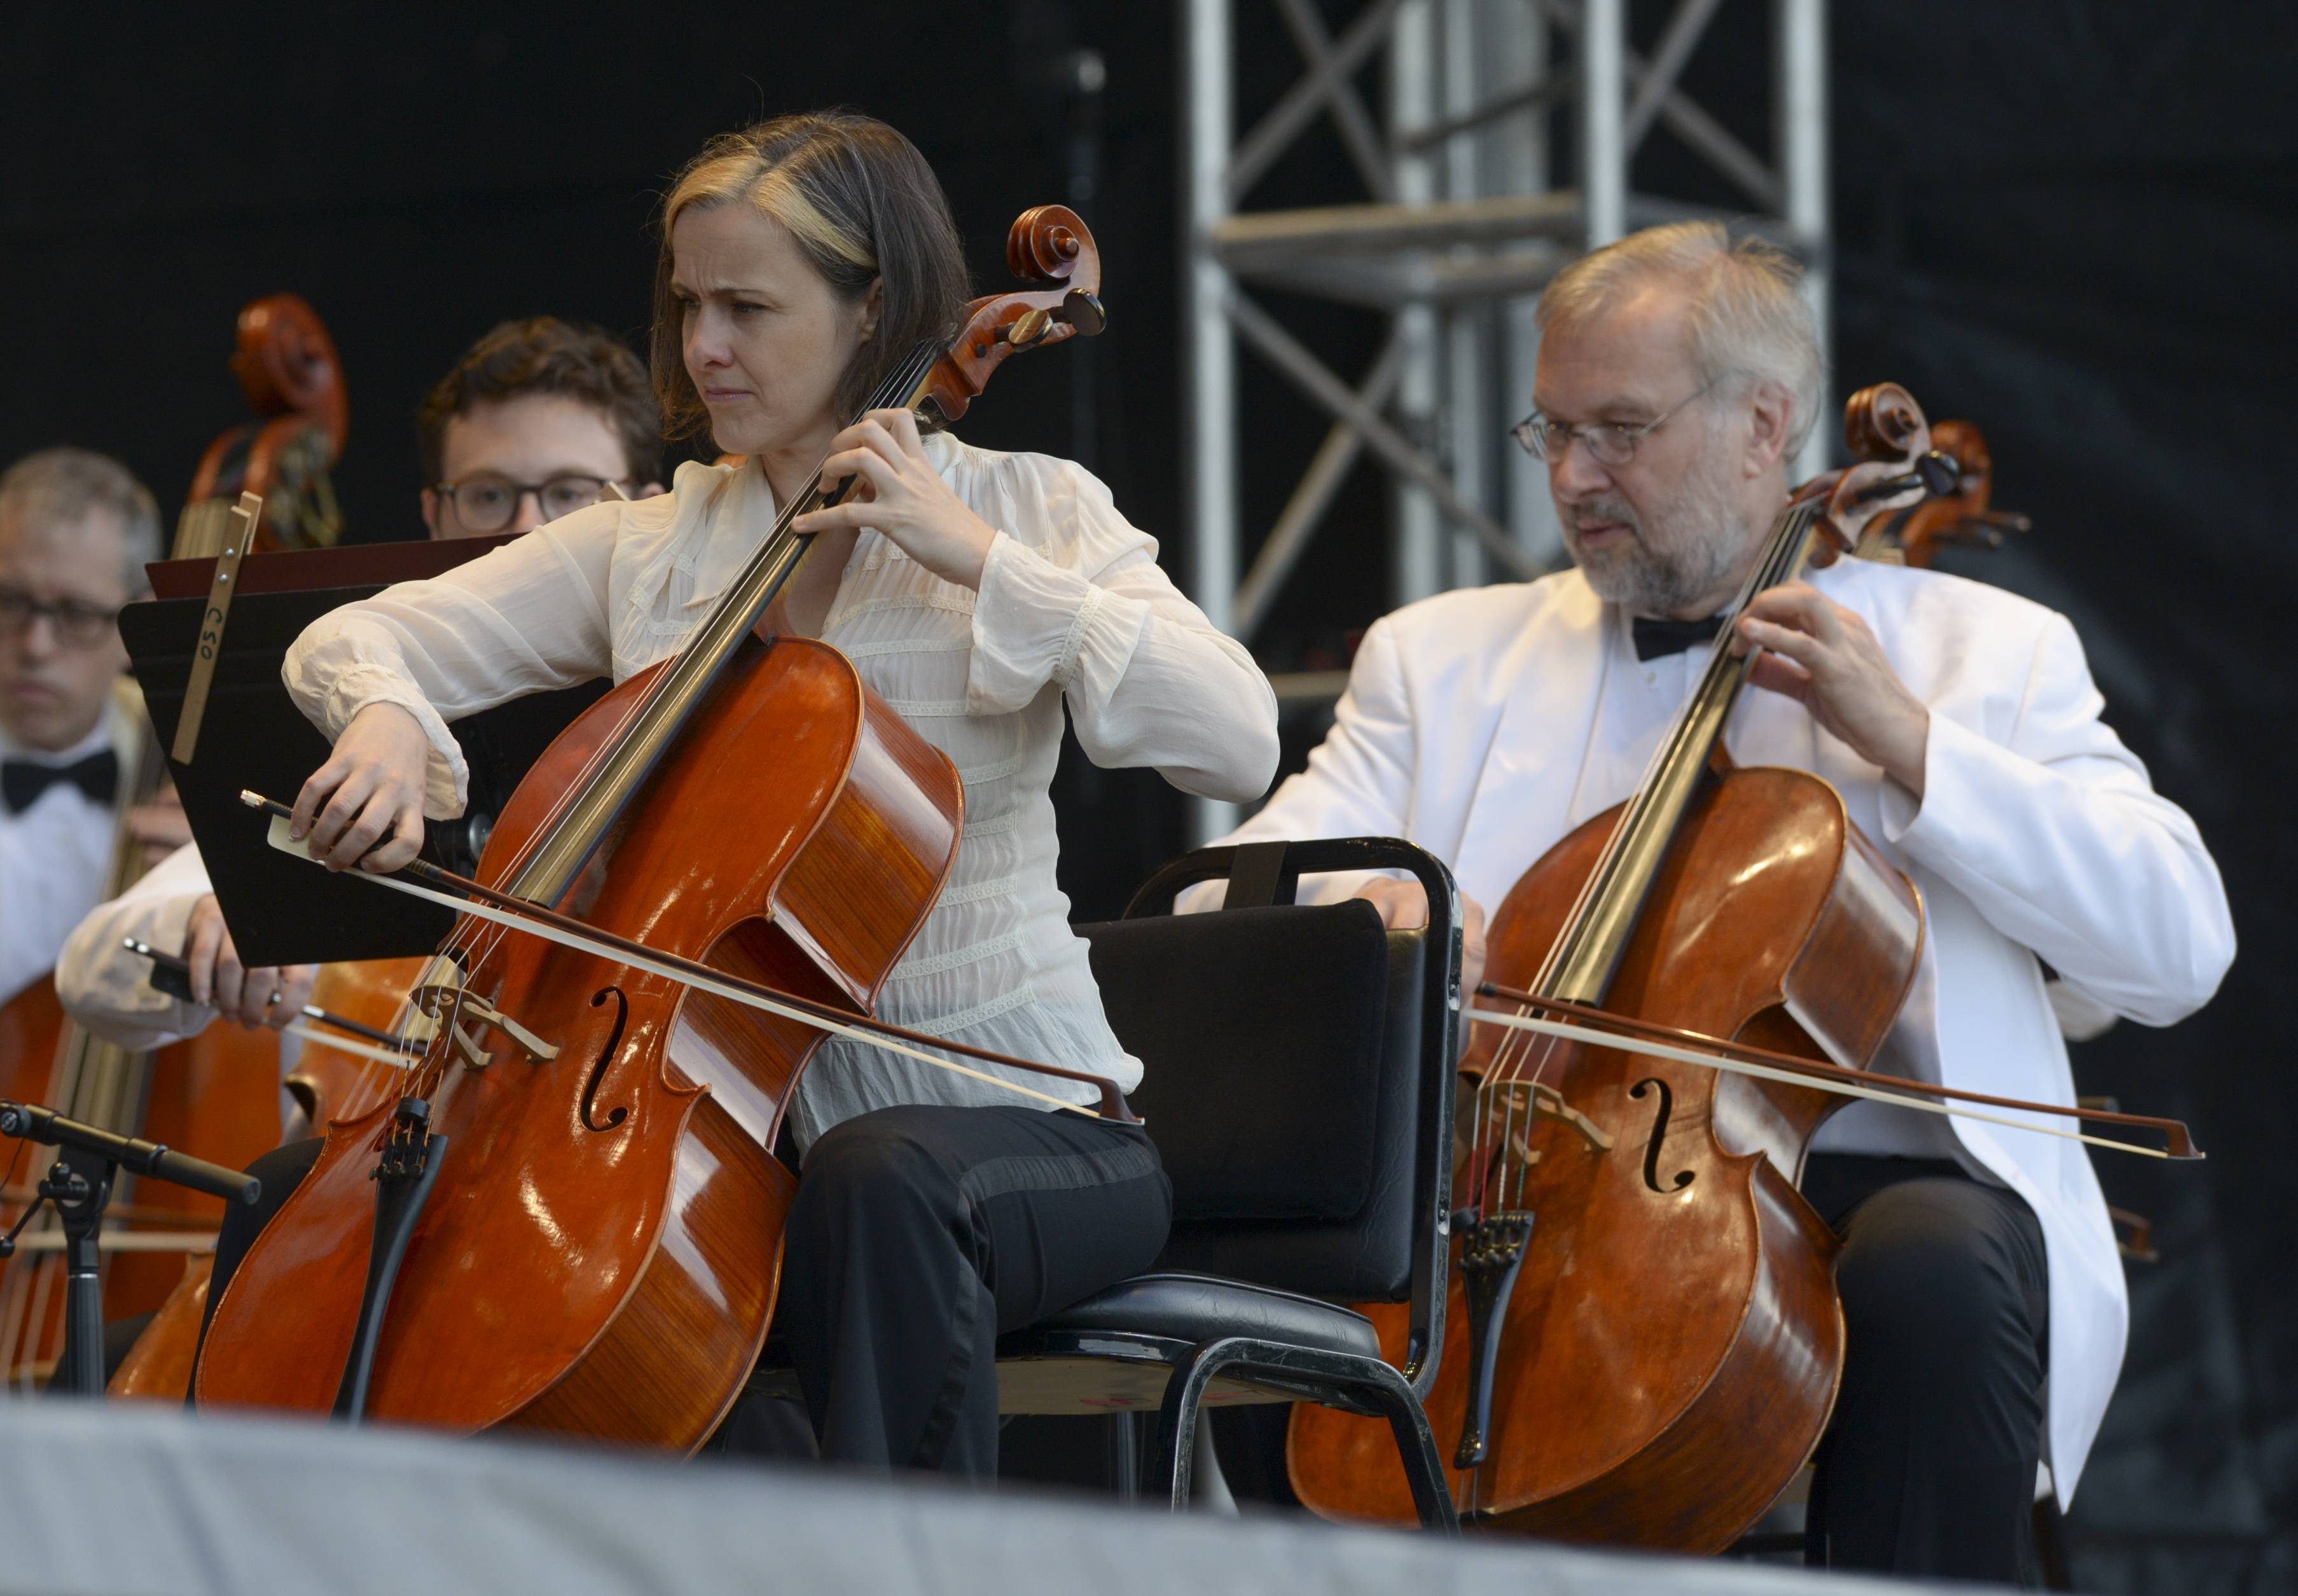 The Chicago Symphony Orchestra performs their first of three night at The Morton Arboretum in Lisle.